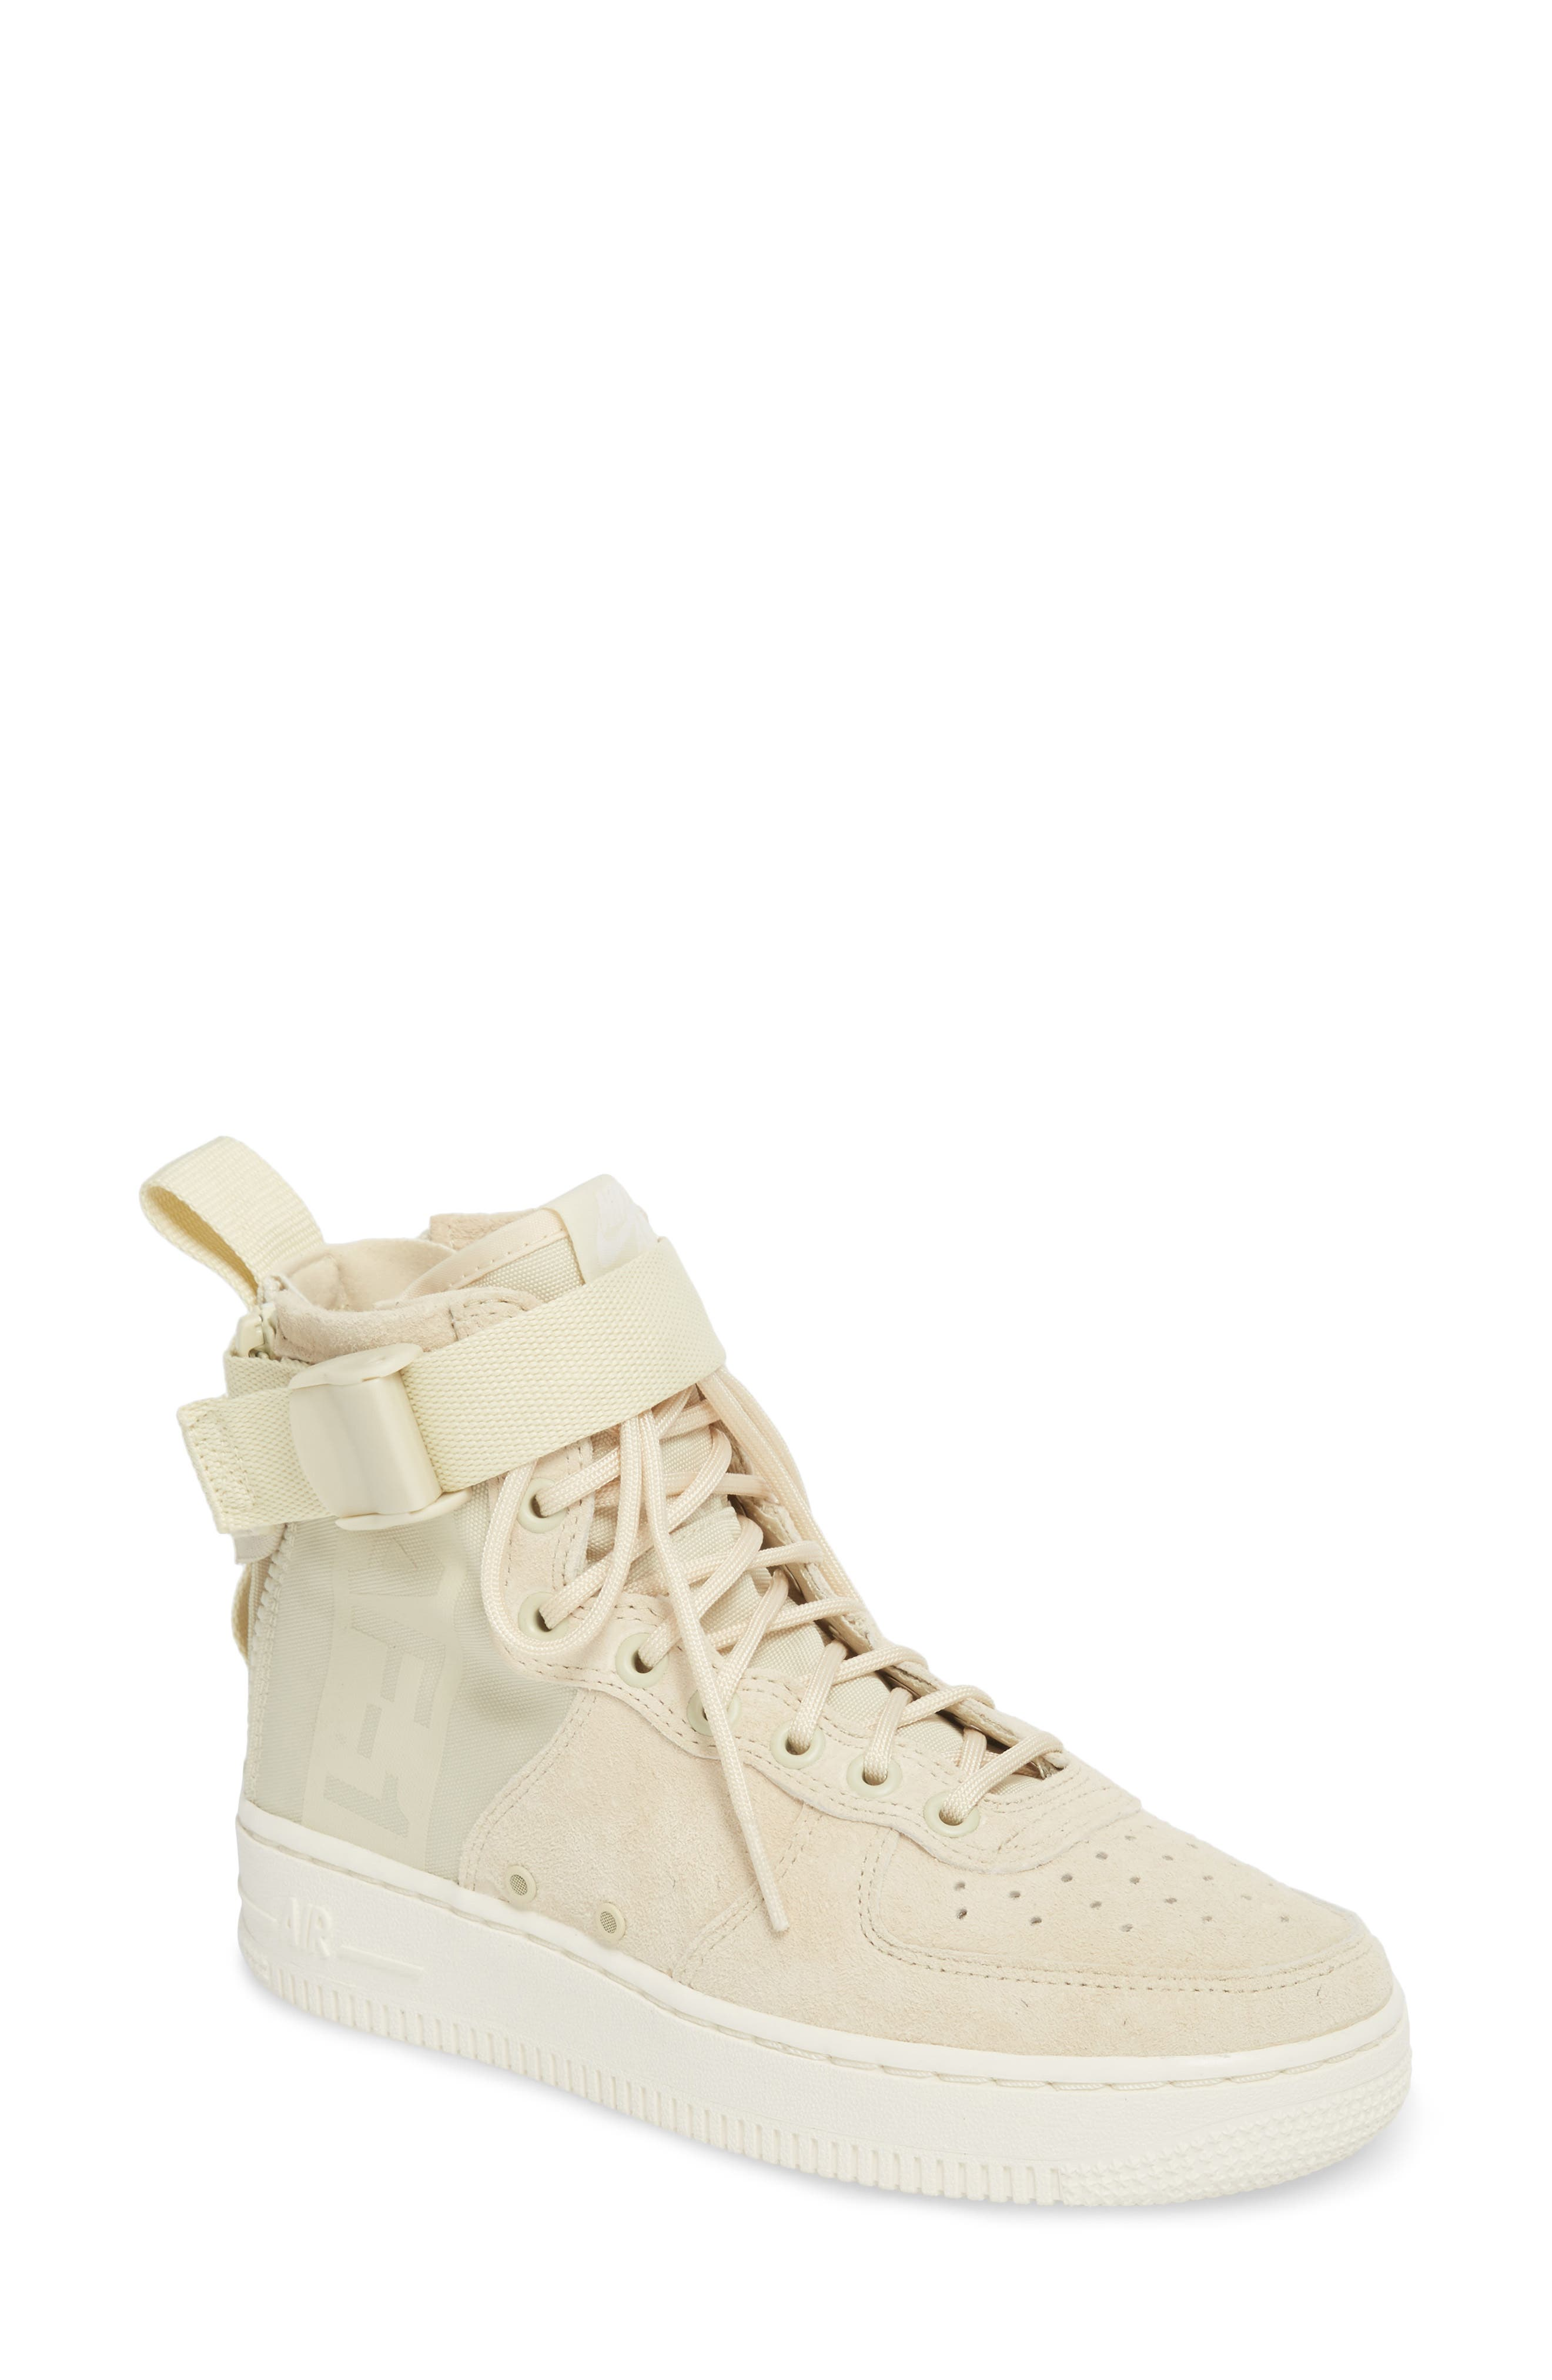 SF Air Force 1 Mid Sneaker,                         Main,                         color, FOSSIL/ SAIL